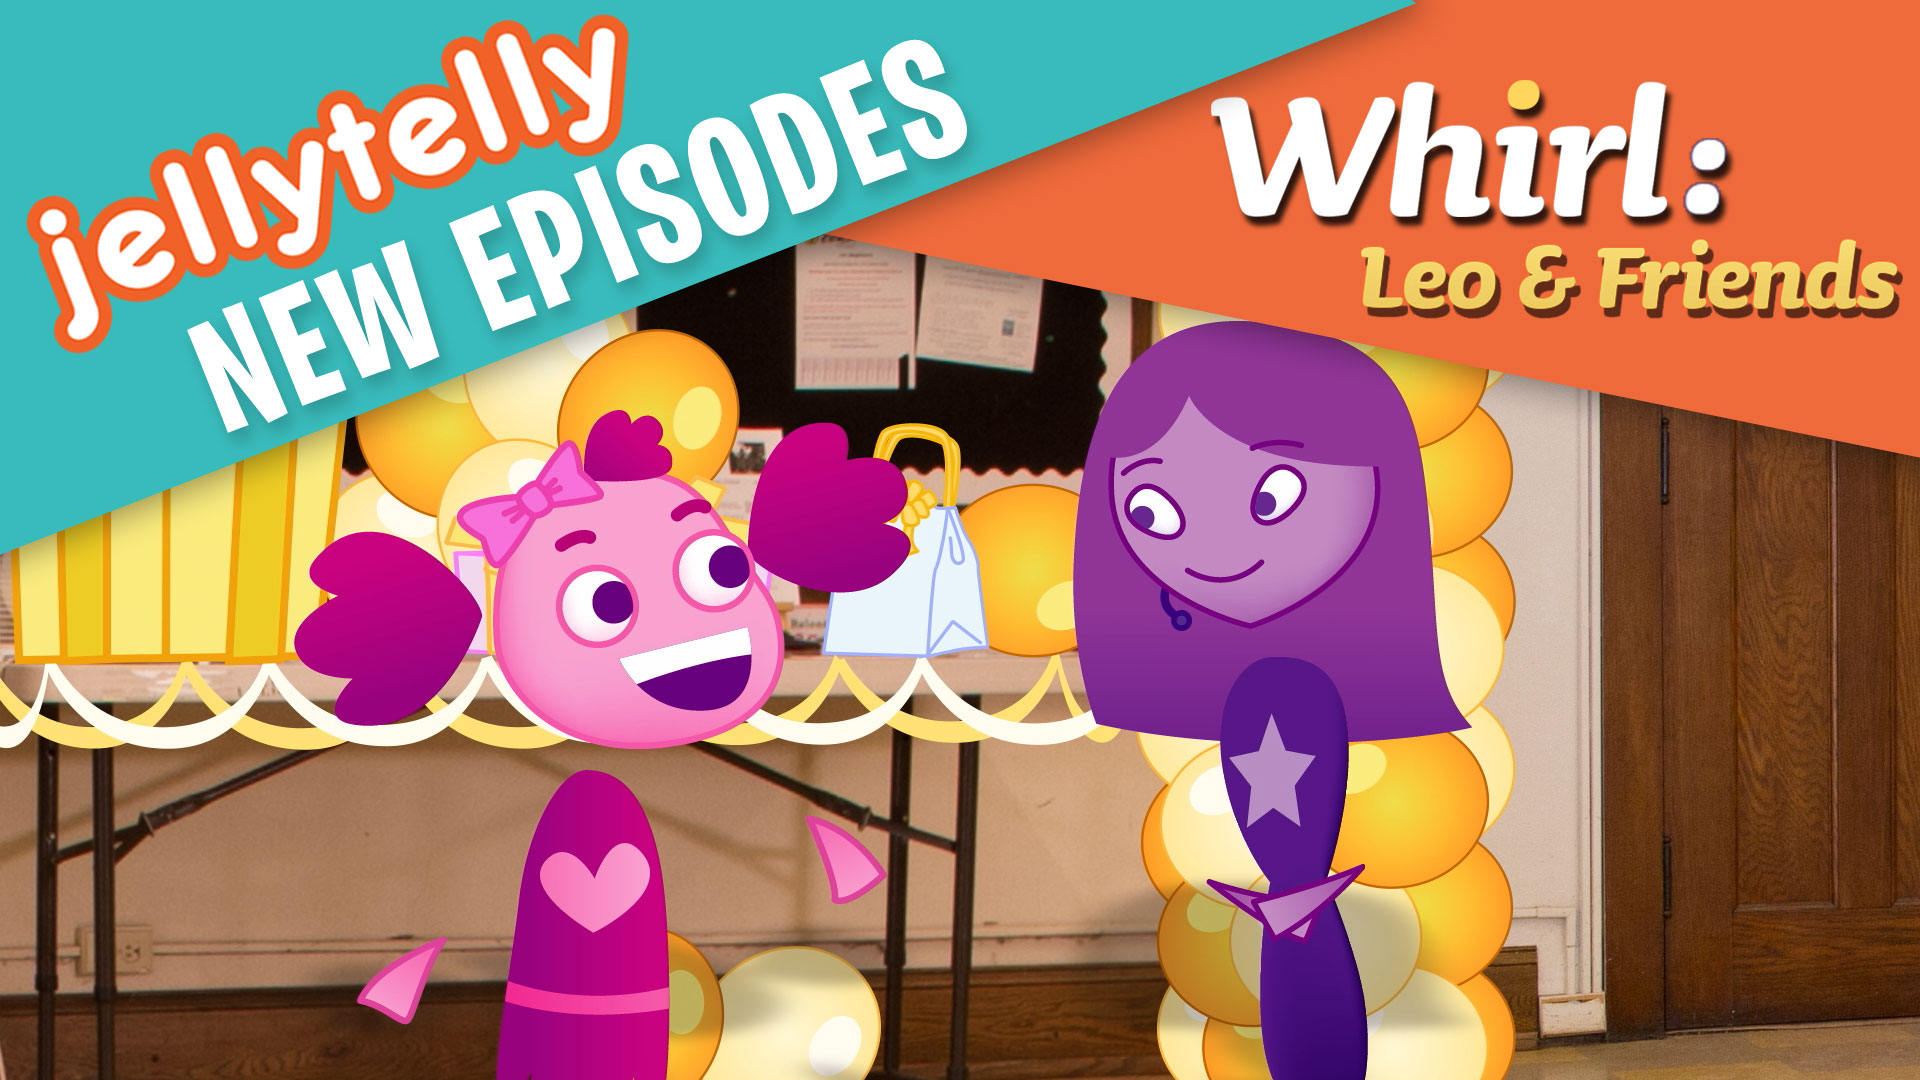 Whirl leo v3 ep12 featured preview image